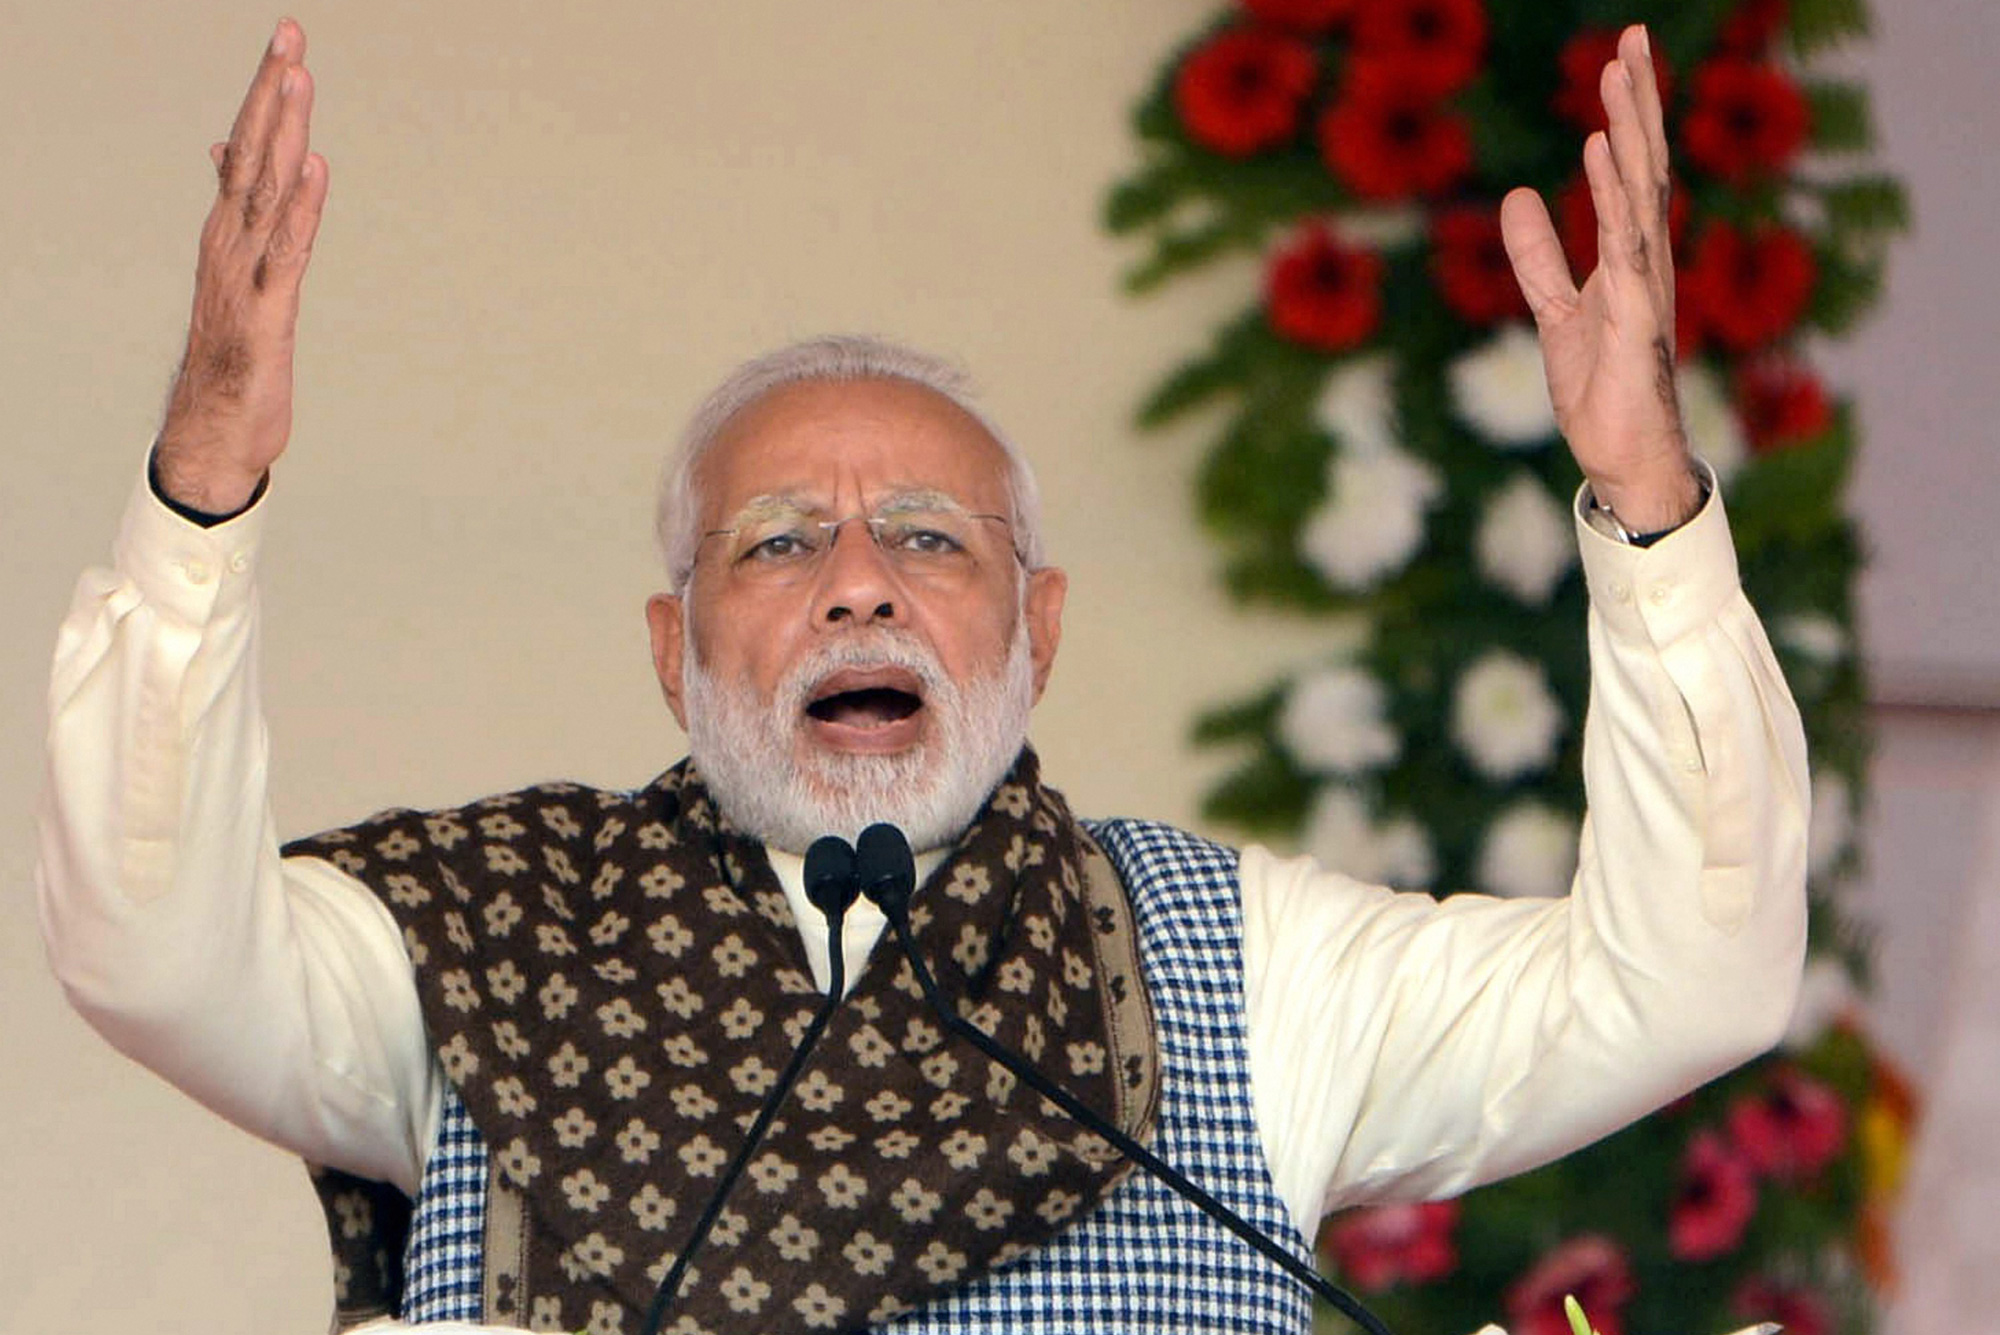 Boatmen in Narendra Modi's parliamentary constituency have gone on an indefinite strike against the Prime Minister's initiative to start two cruise trips across the Ganga, denying tourists one of the key attractions of visiting Varanasi — a ride down the river.